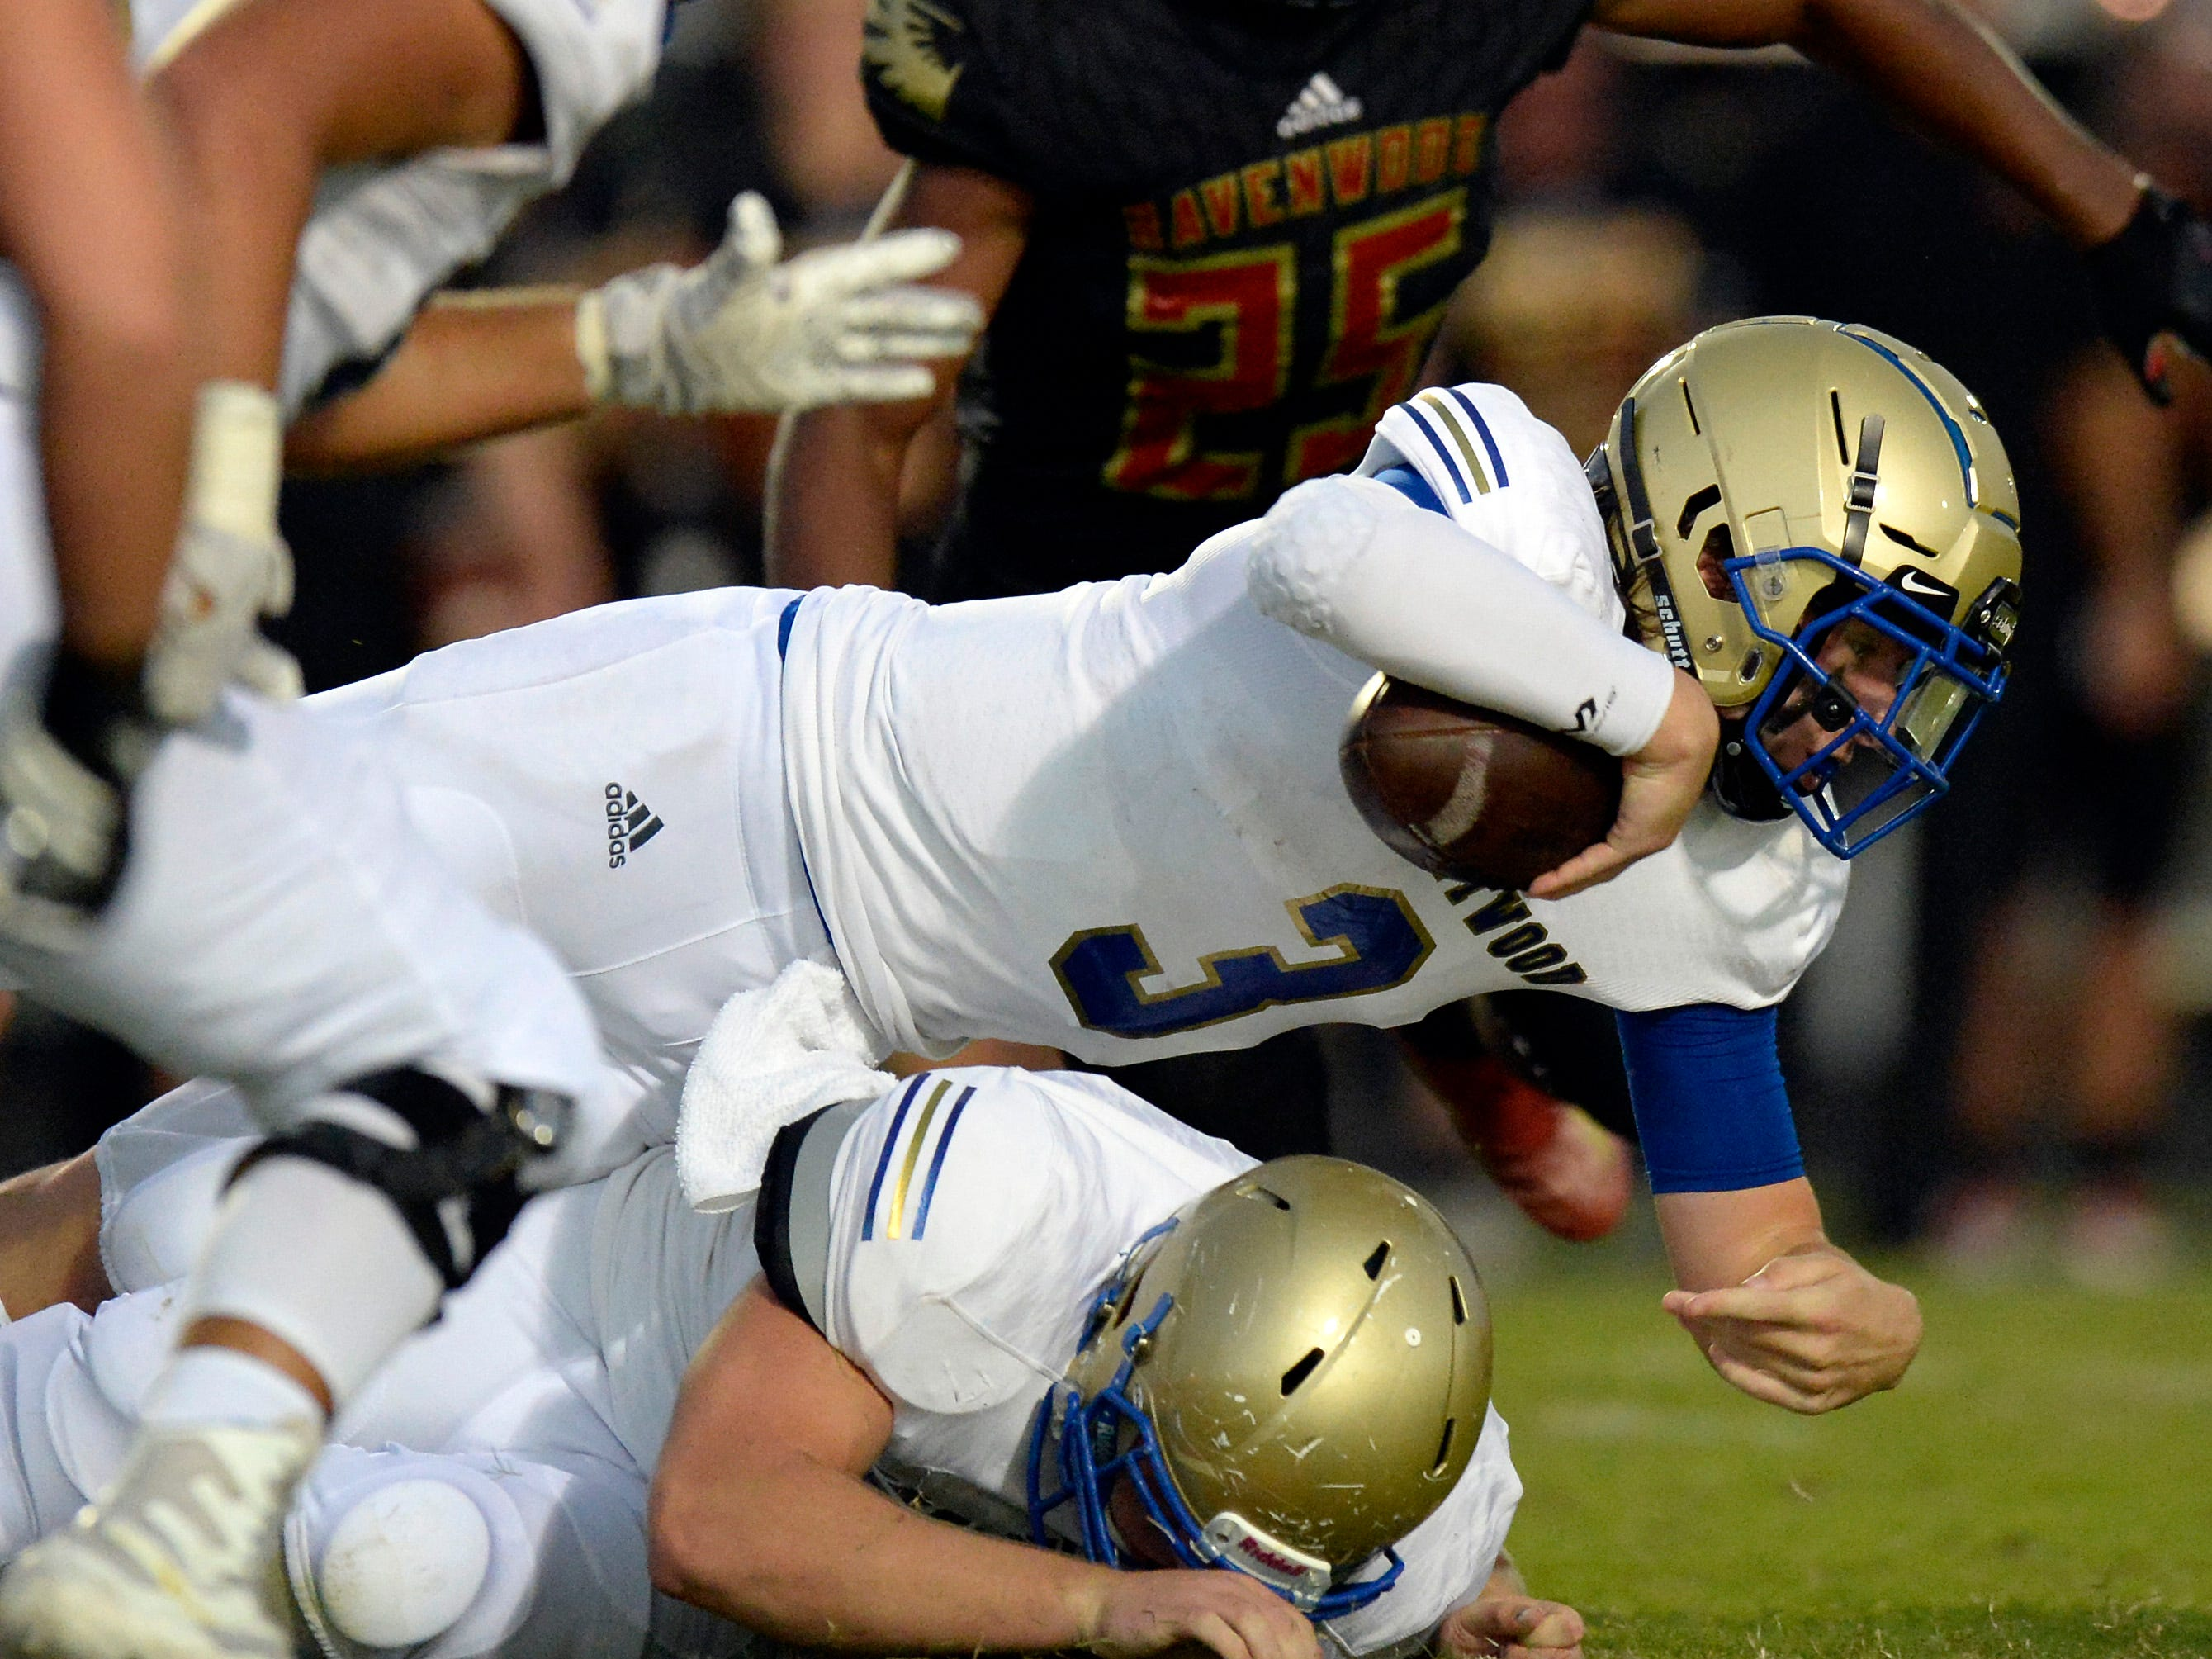 Brentwood quarterback Cade Granzow (3) dives for a first down against Ravenwood during the first half of an high school football game Friday, September 14, 2018, in Brentwood, Tenn.